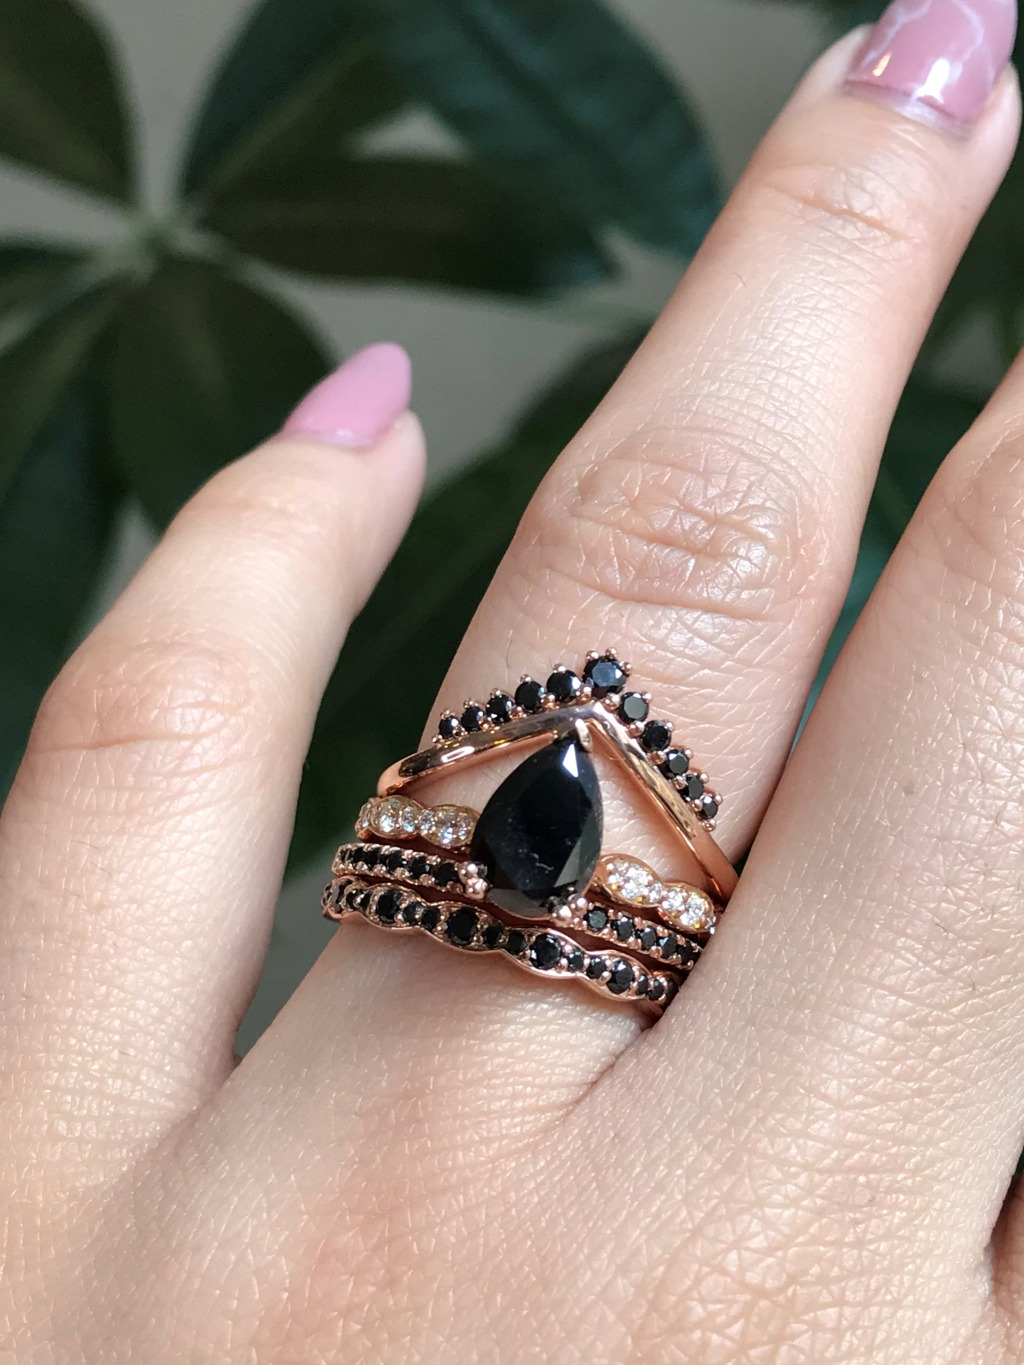 Mysterious yet romantic, black diamonds have stolen our hearts ~ She's a Pear Black Diamond in Solitaire style stacked with a Black